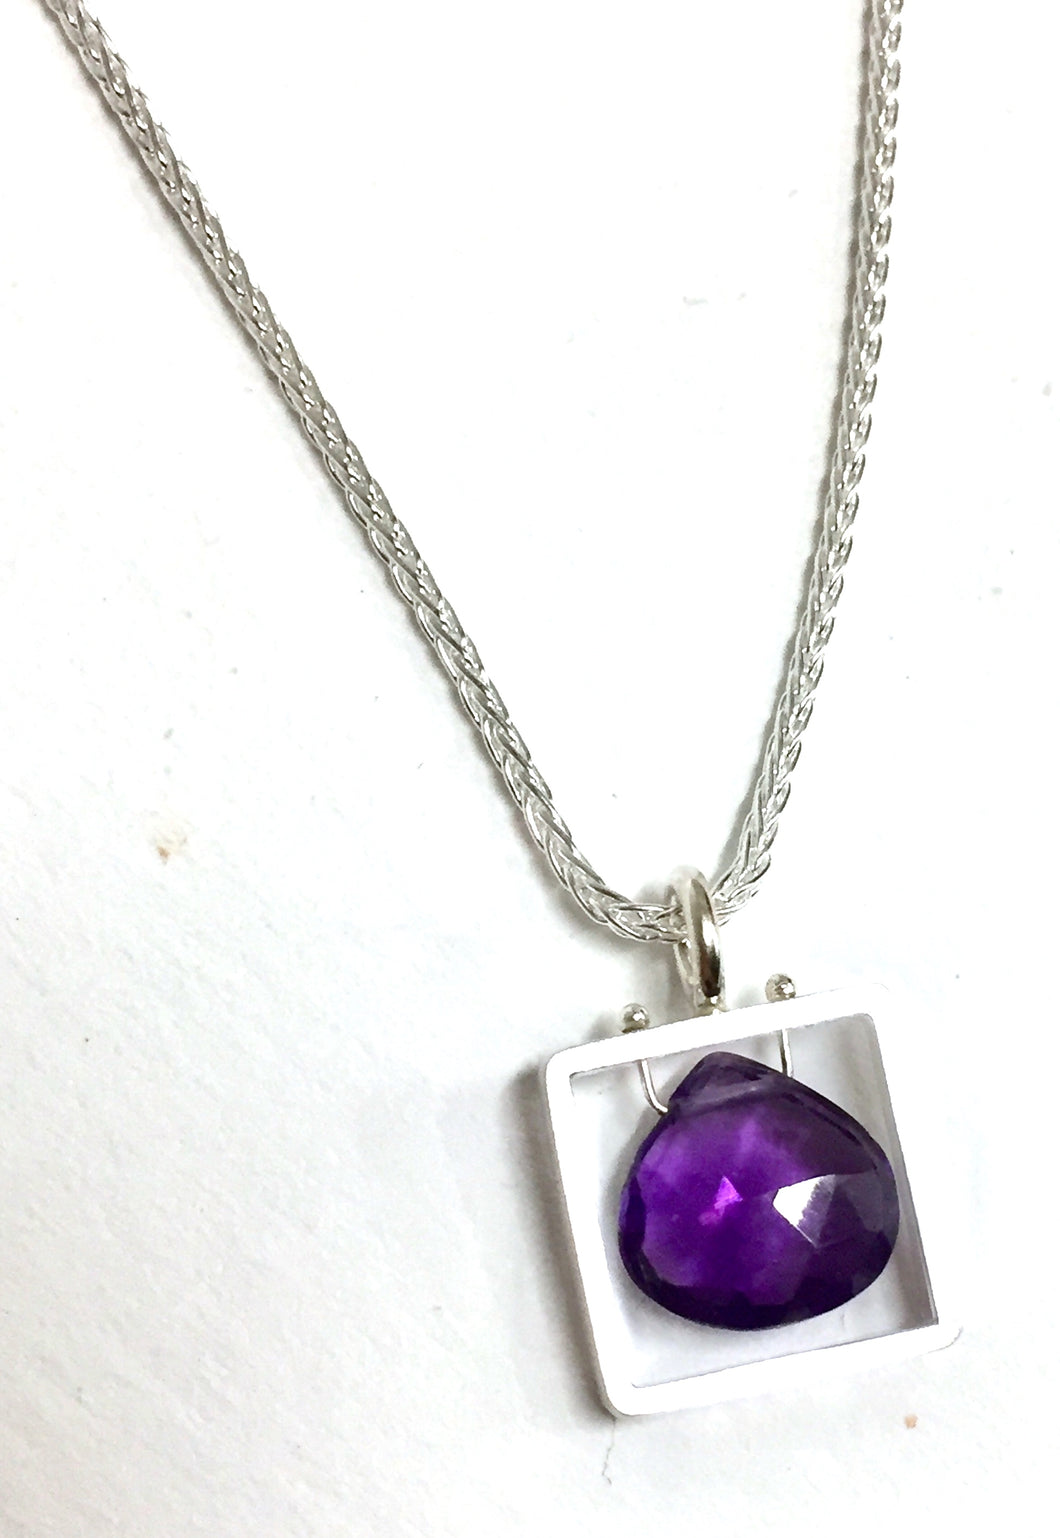 Necklace With Square Amethyst Pendant